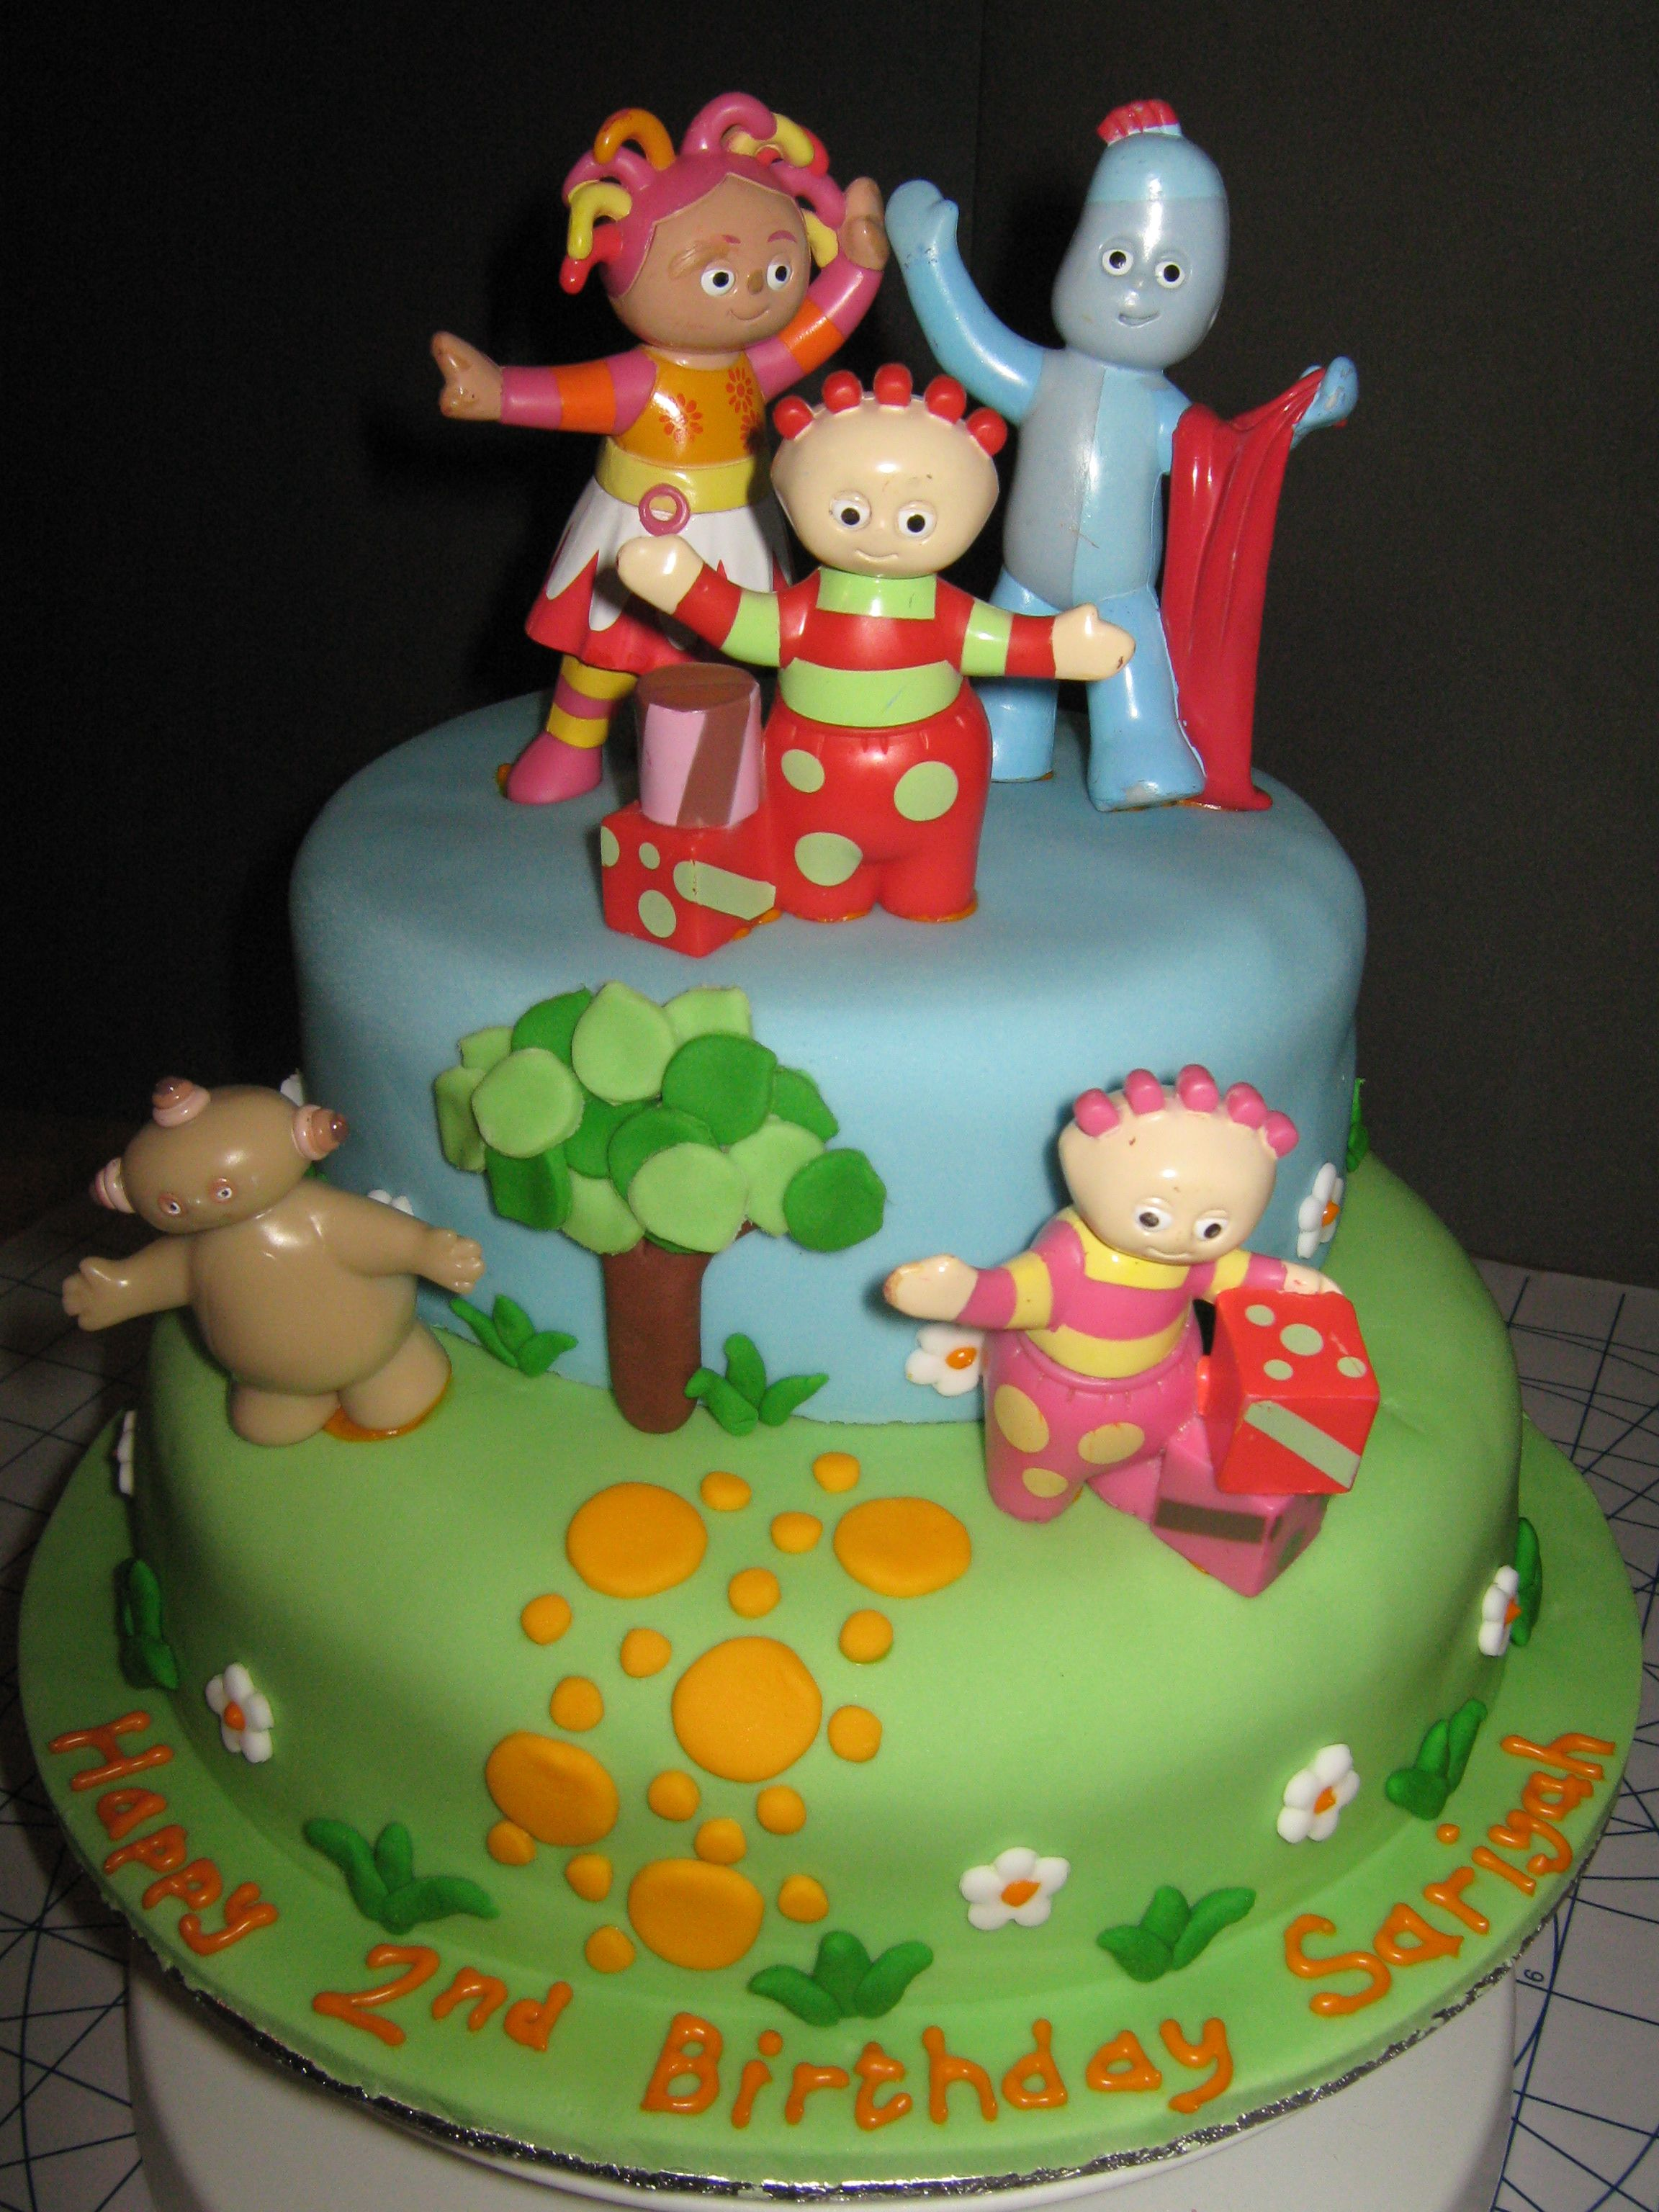 Novelty Cakes - Bing Images | CAKES AND DERESTS | Pinterest | Night ...